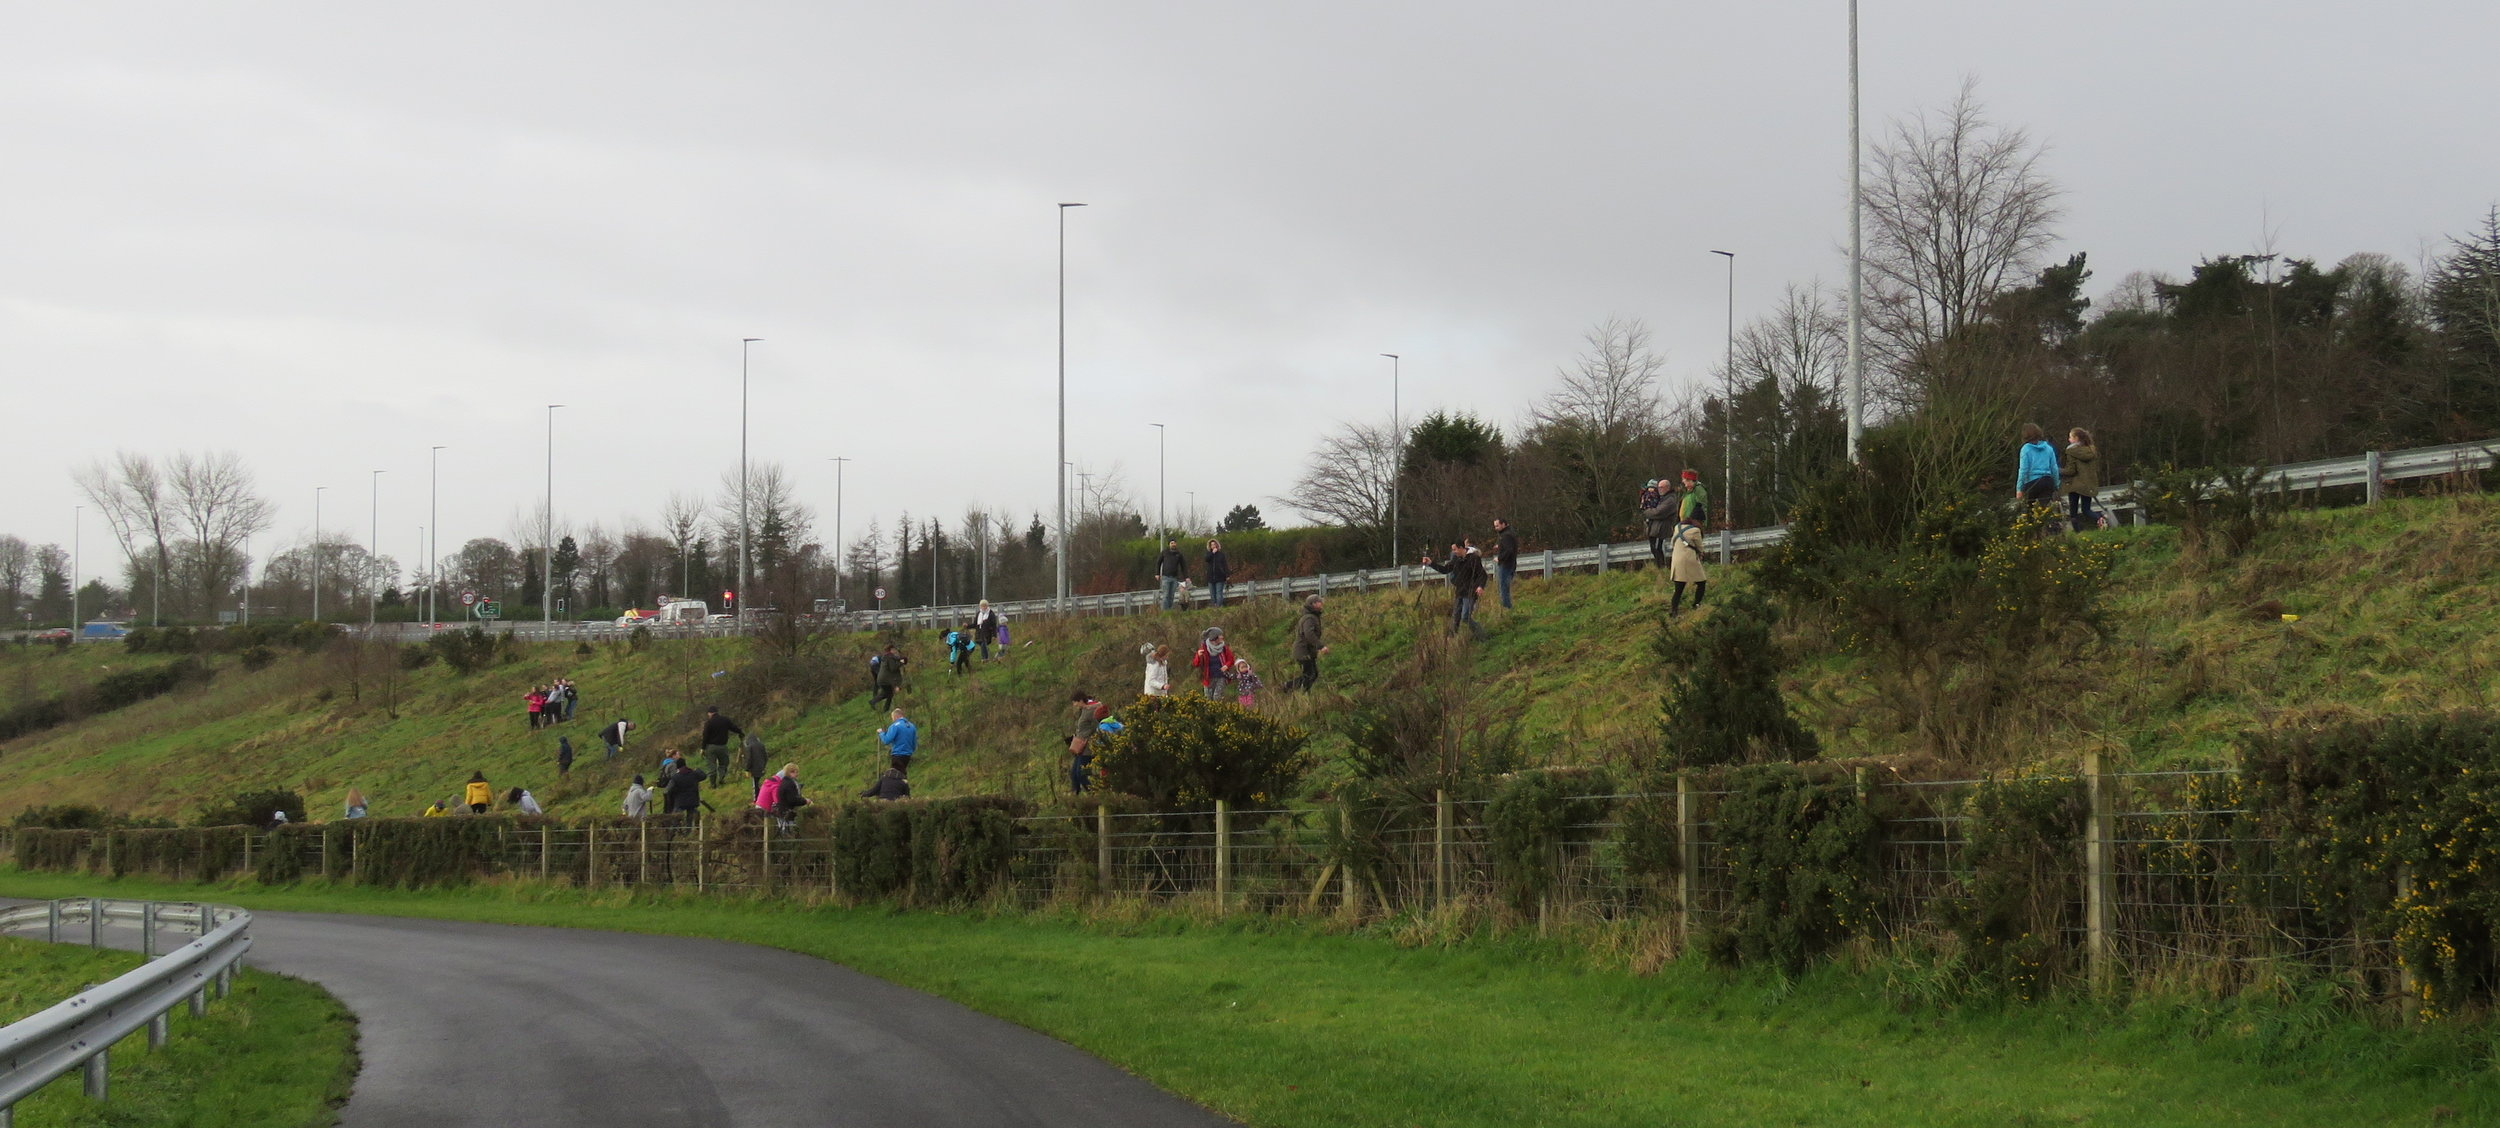 Tree planting on 10th February in Derry with Derry City & Strabane District Council.